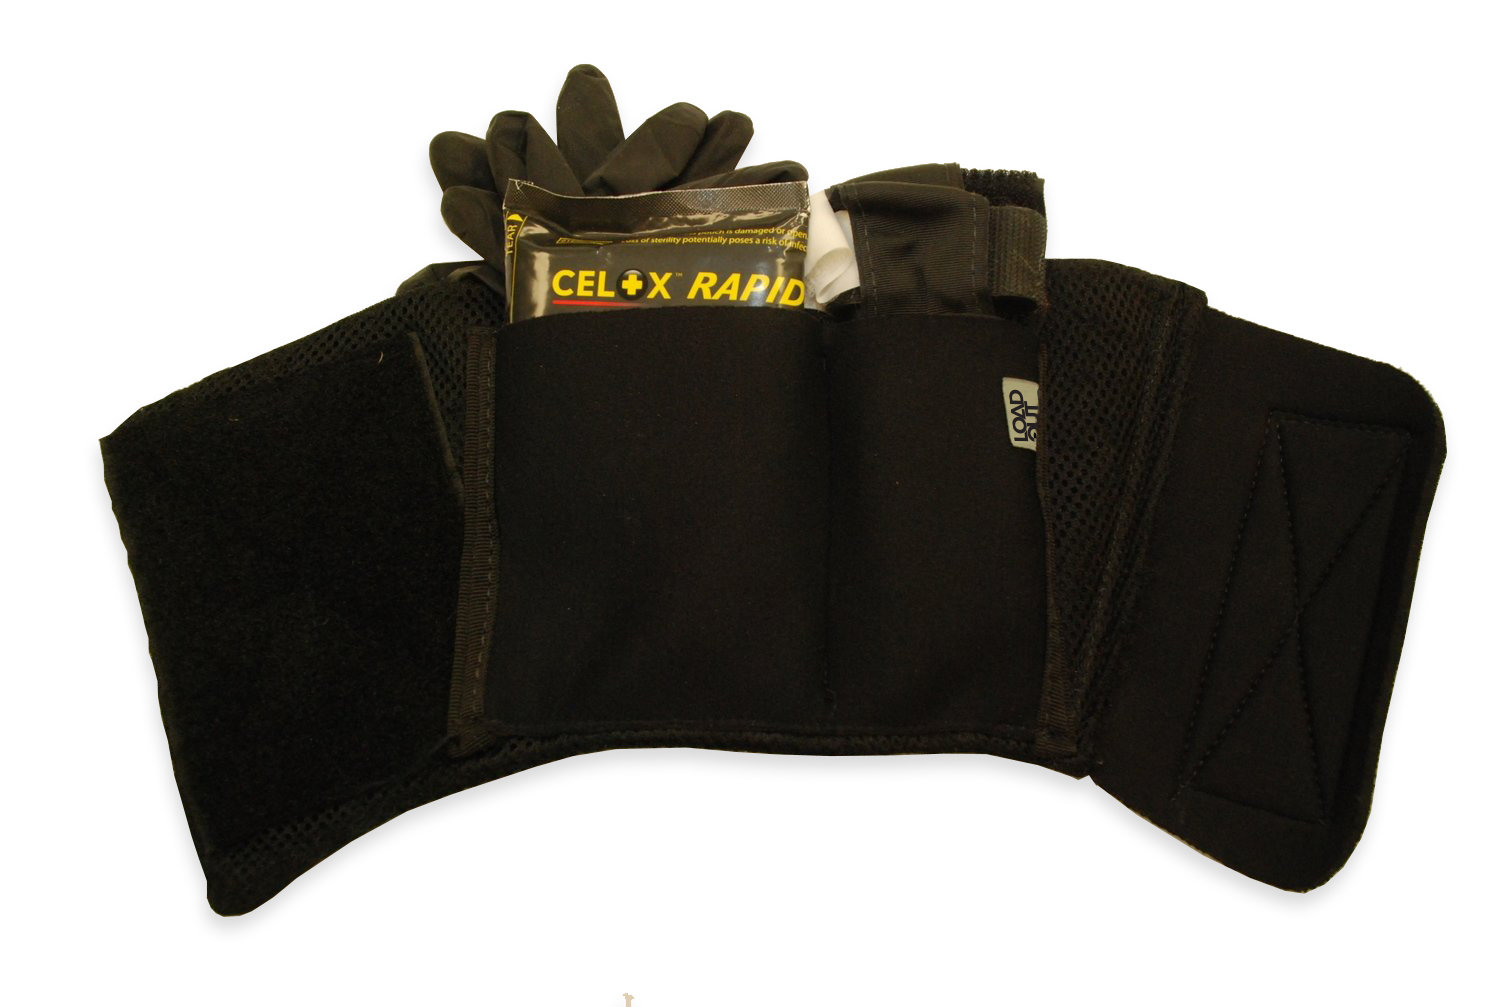 LoadOut Gear Comfort-Air Ankle Holster for Bleed Control Kit